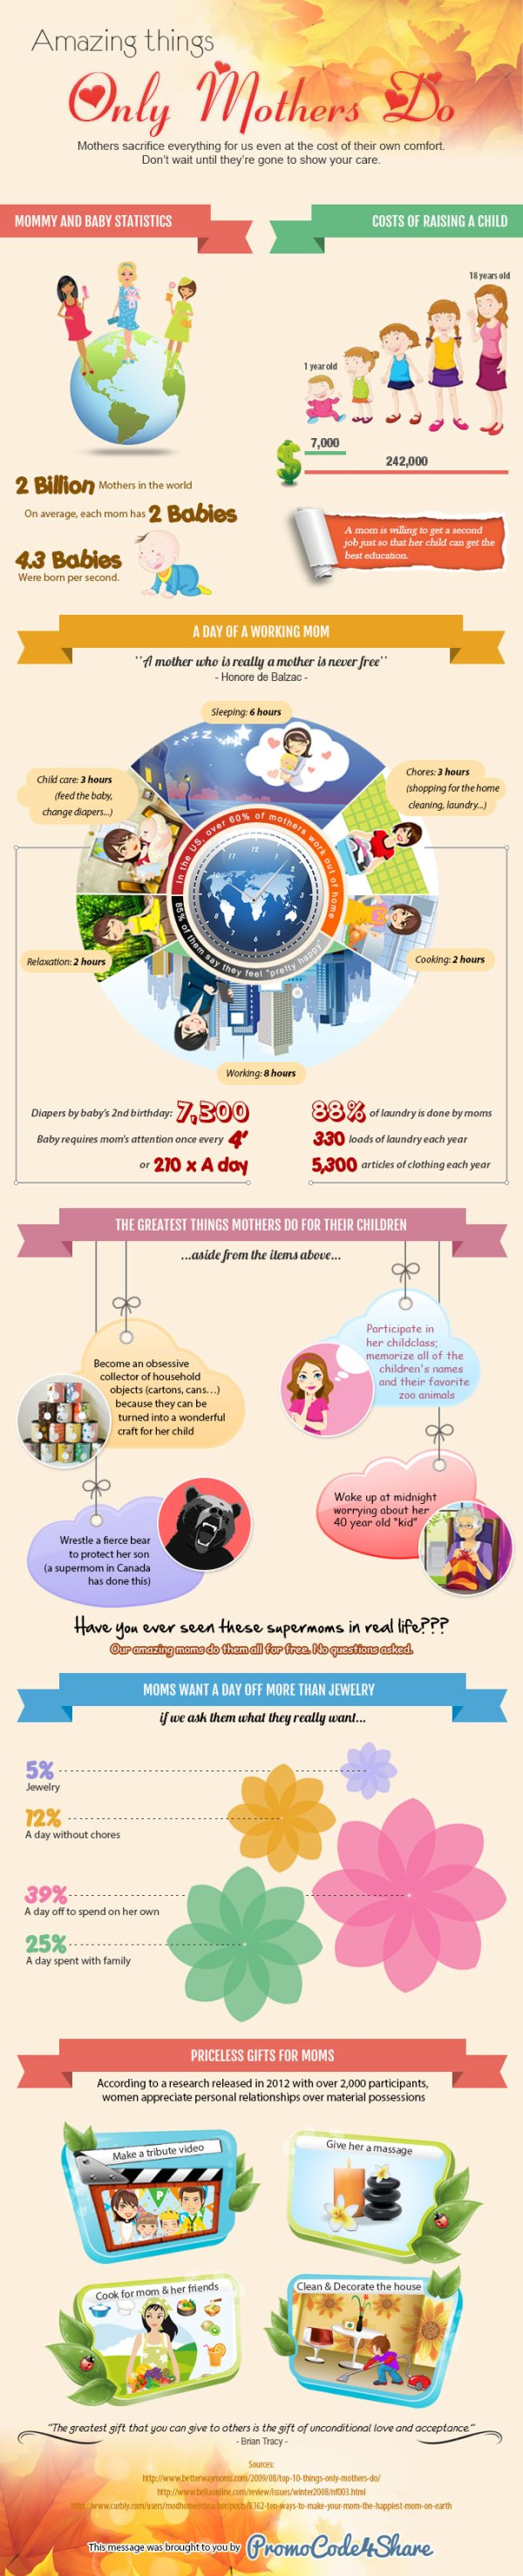 Mother's Day: Amazing things only mothers do [Infographic]